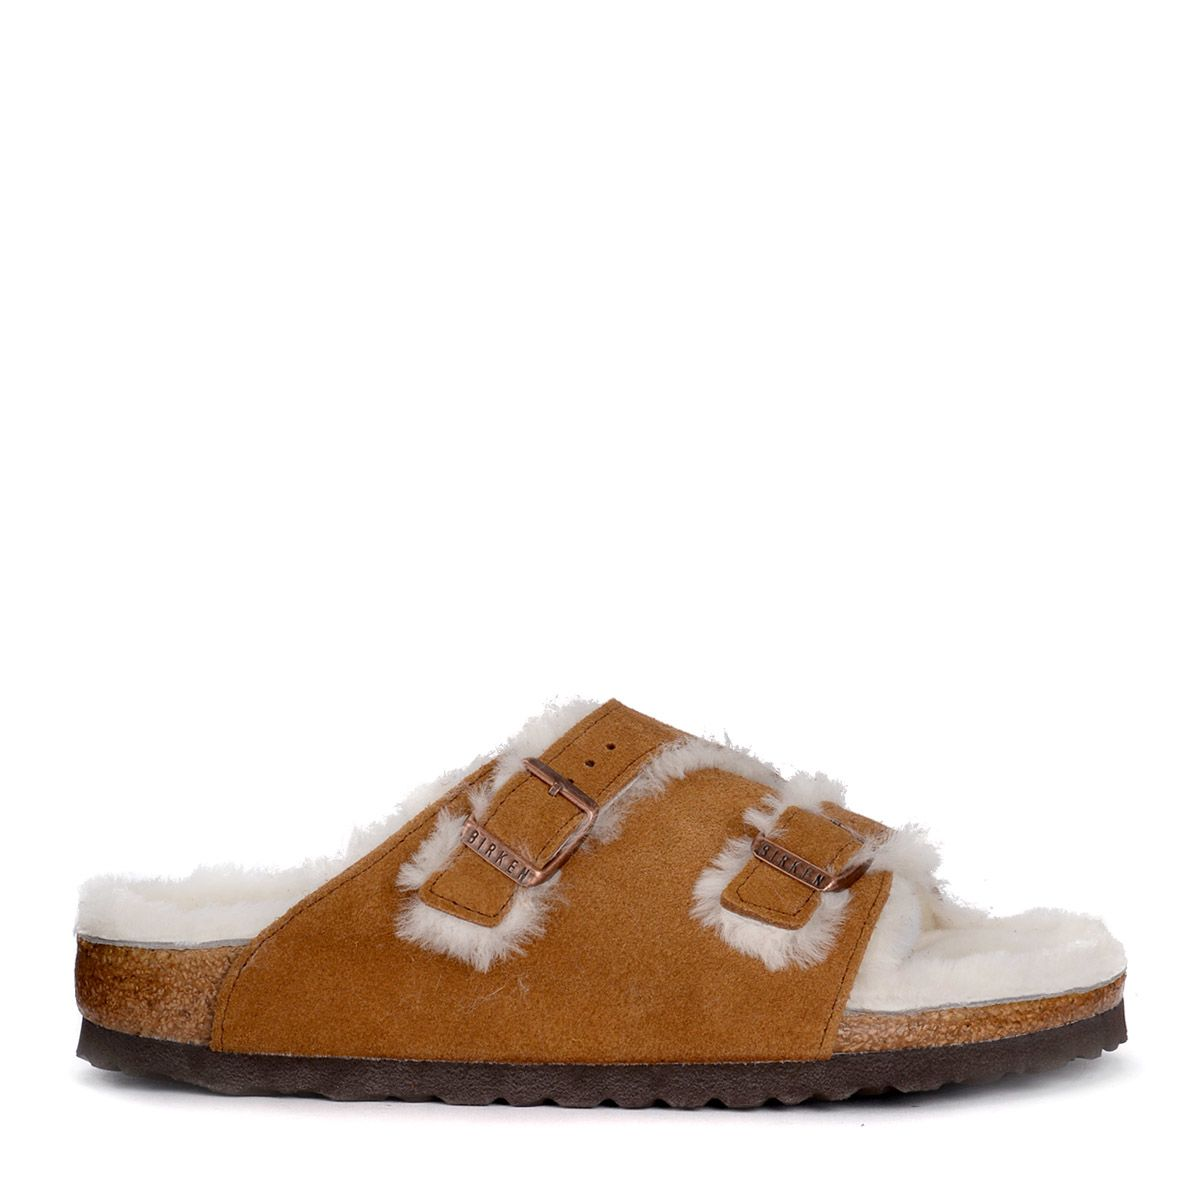 Birkenstock ZÜRICH BROWN SUEDE AND FUR SANDAL